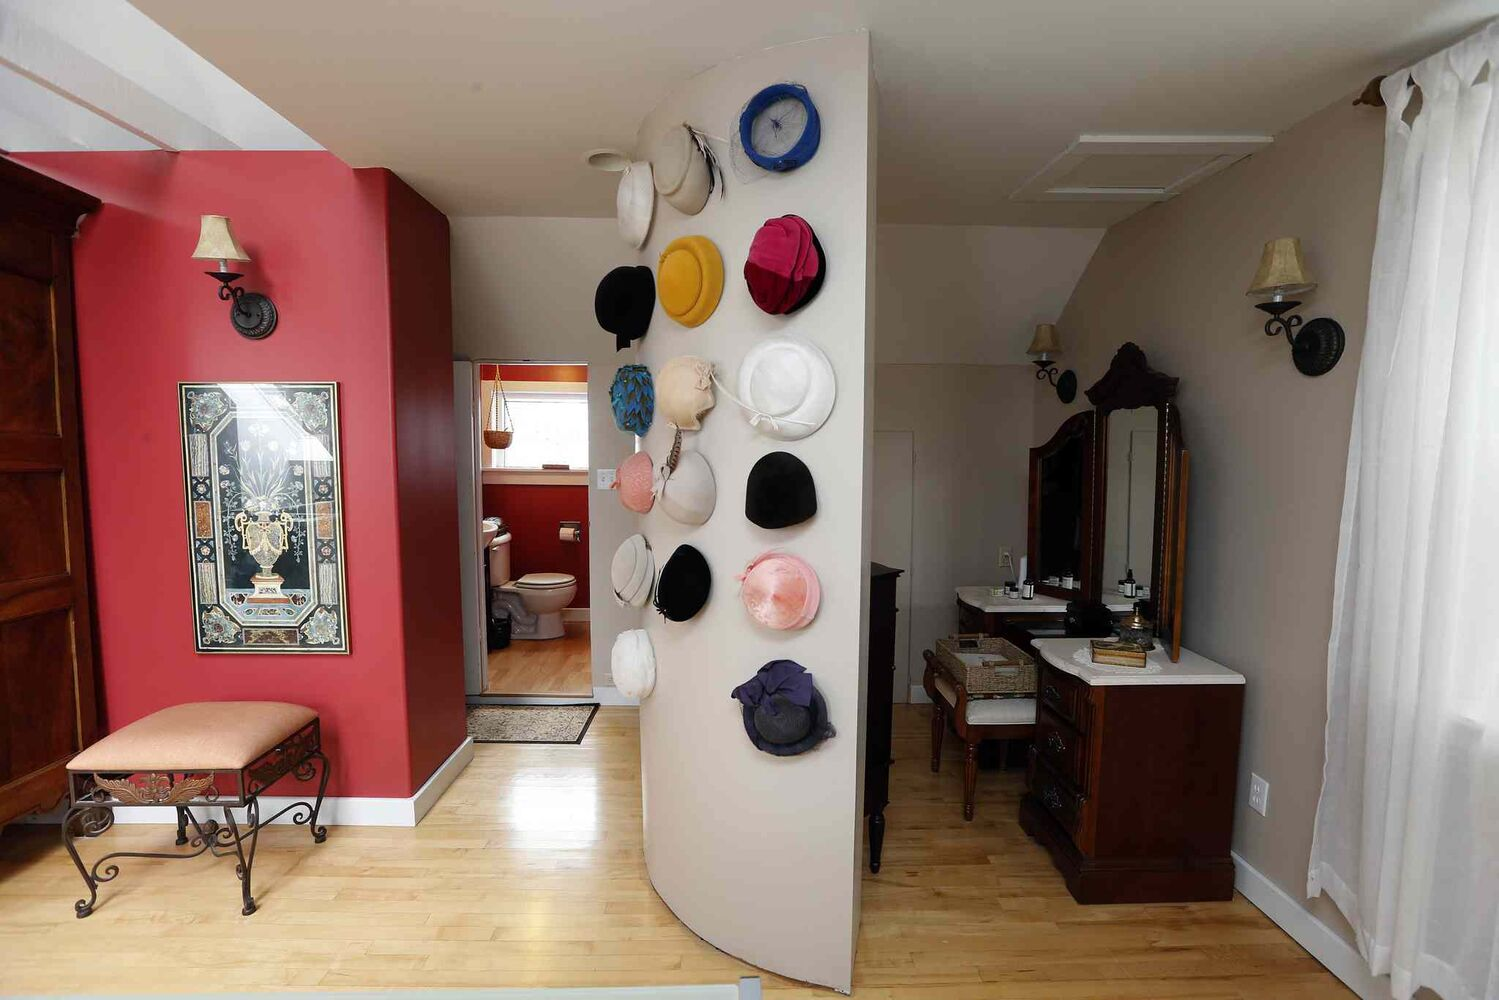 The bathroom and dressing room are decorated in a decidedly modern style. (KEN GIGLIOTTI / WINNIPEG FREE PRESS)